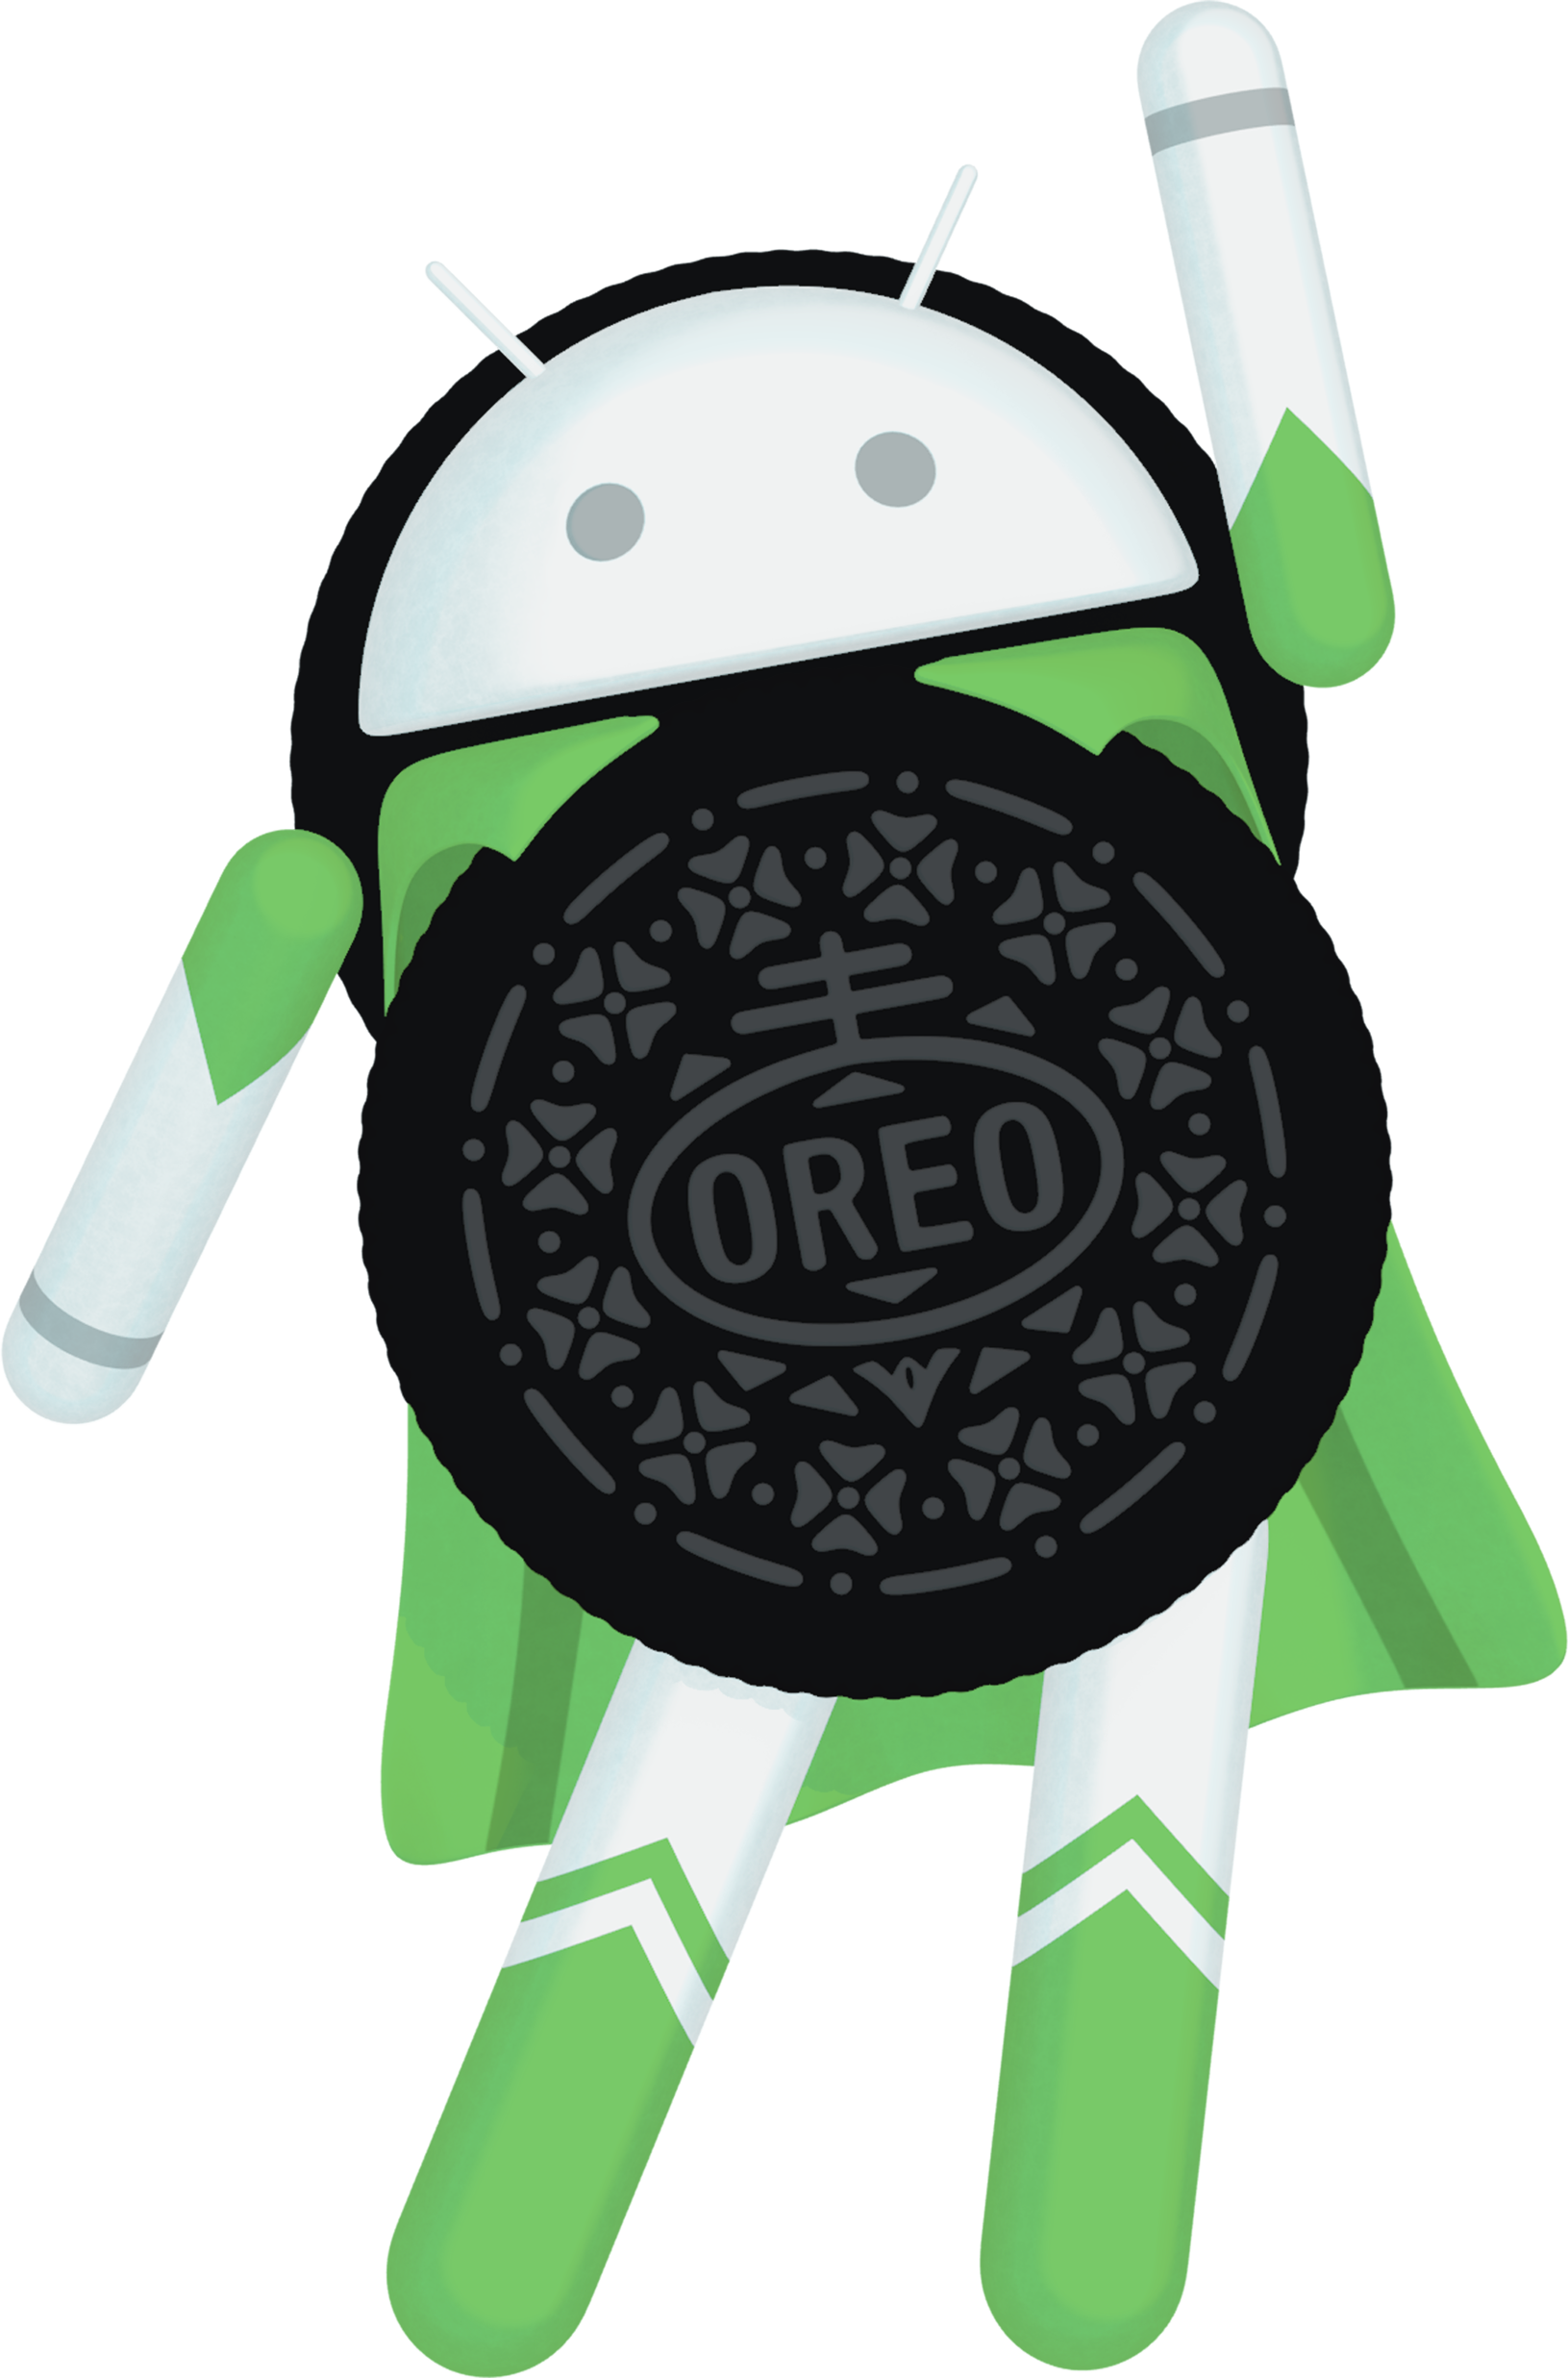 Oreo clipart advertisement. Android may fix a